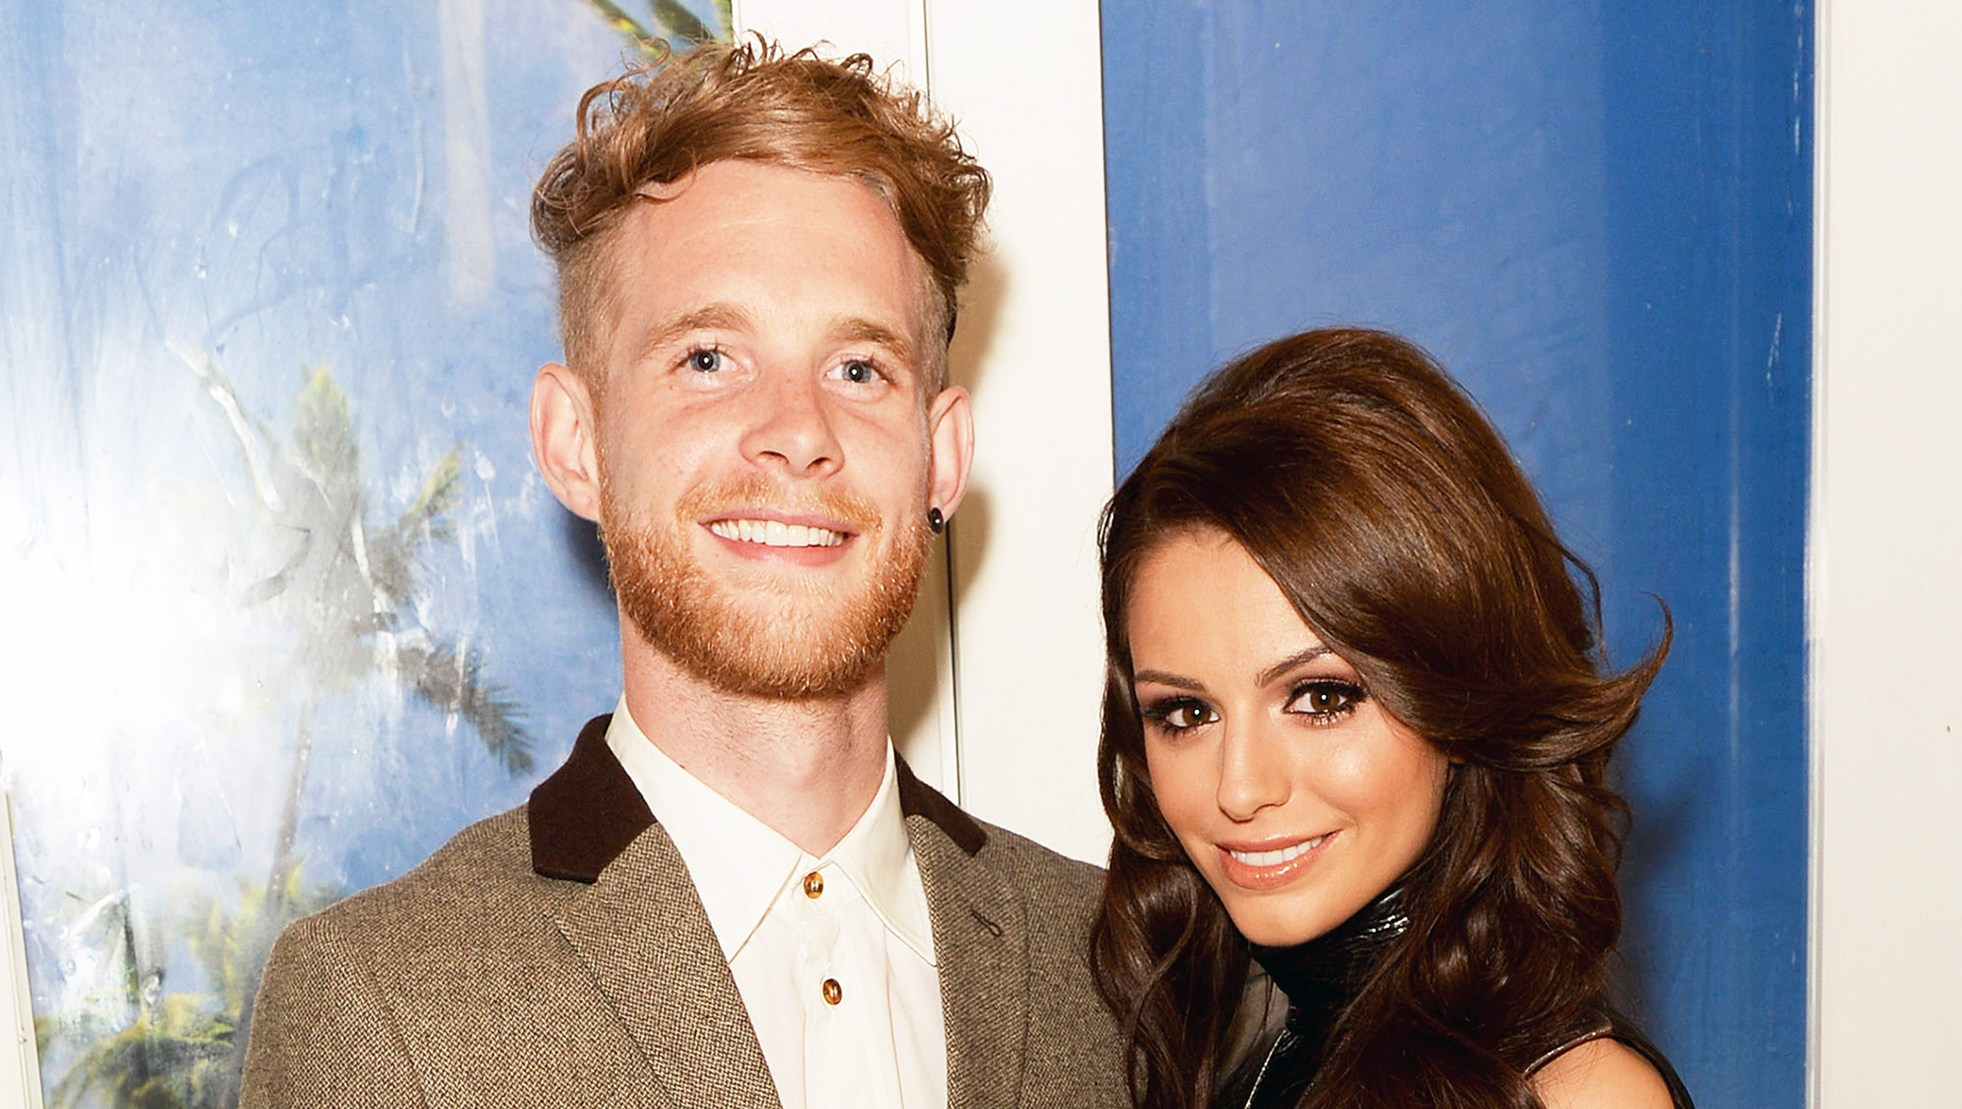 Cher Lloyd and Craig Monk attend birthday celebrations at Mahiki in London, England.